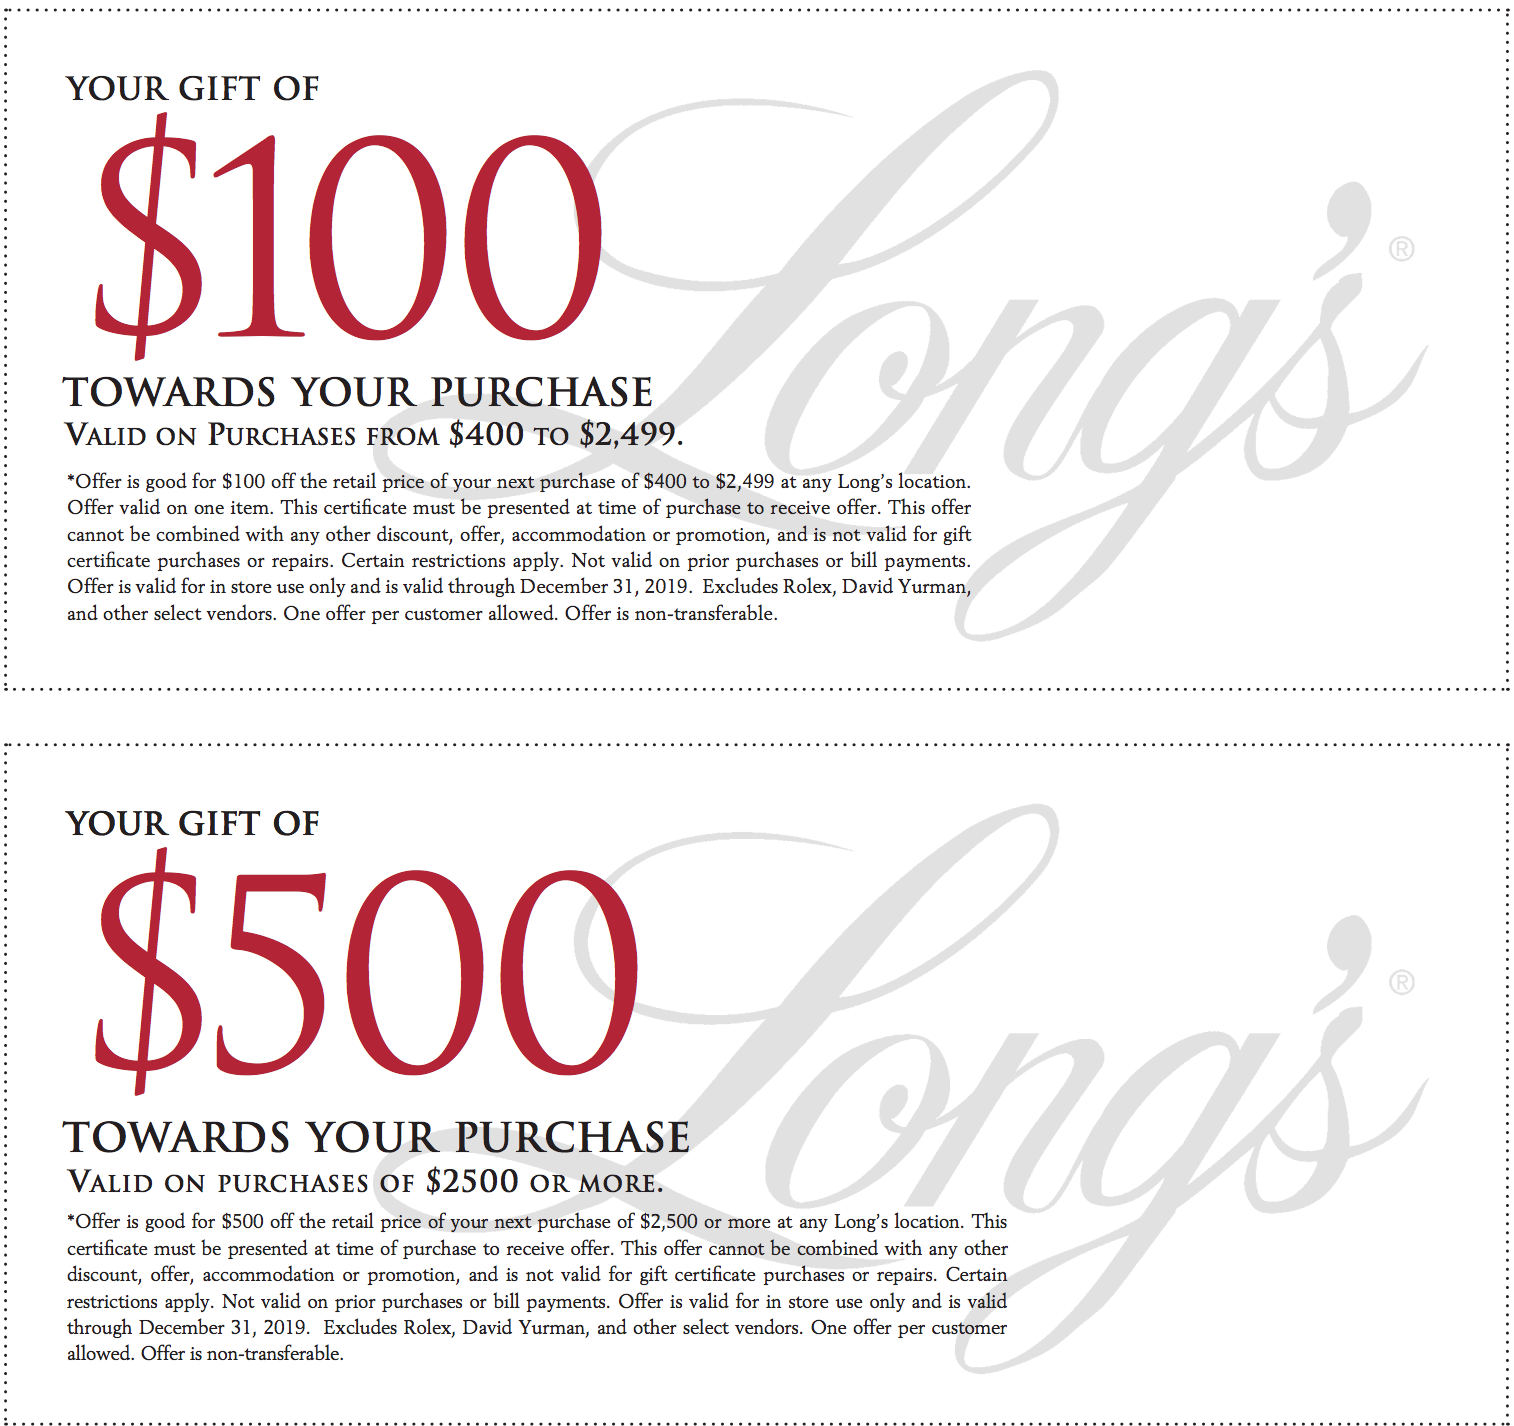 Long's Jewelers Holiday Discount